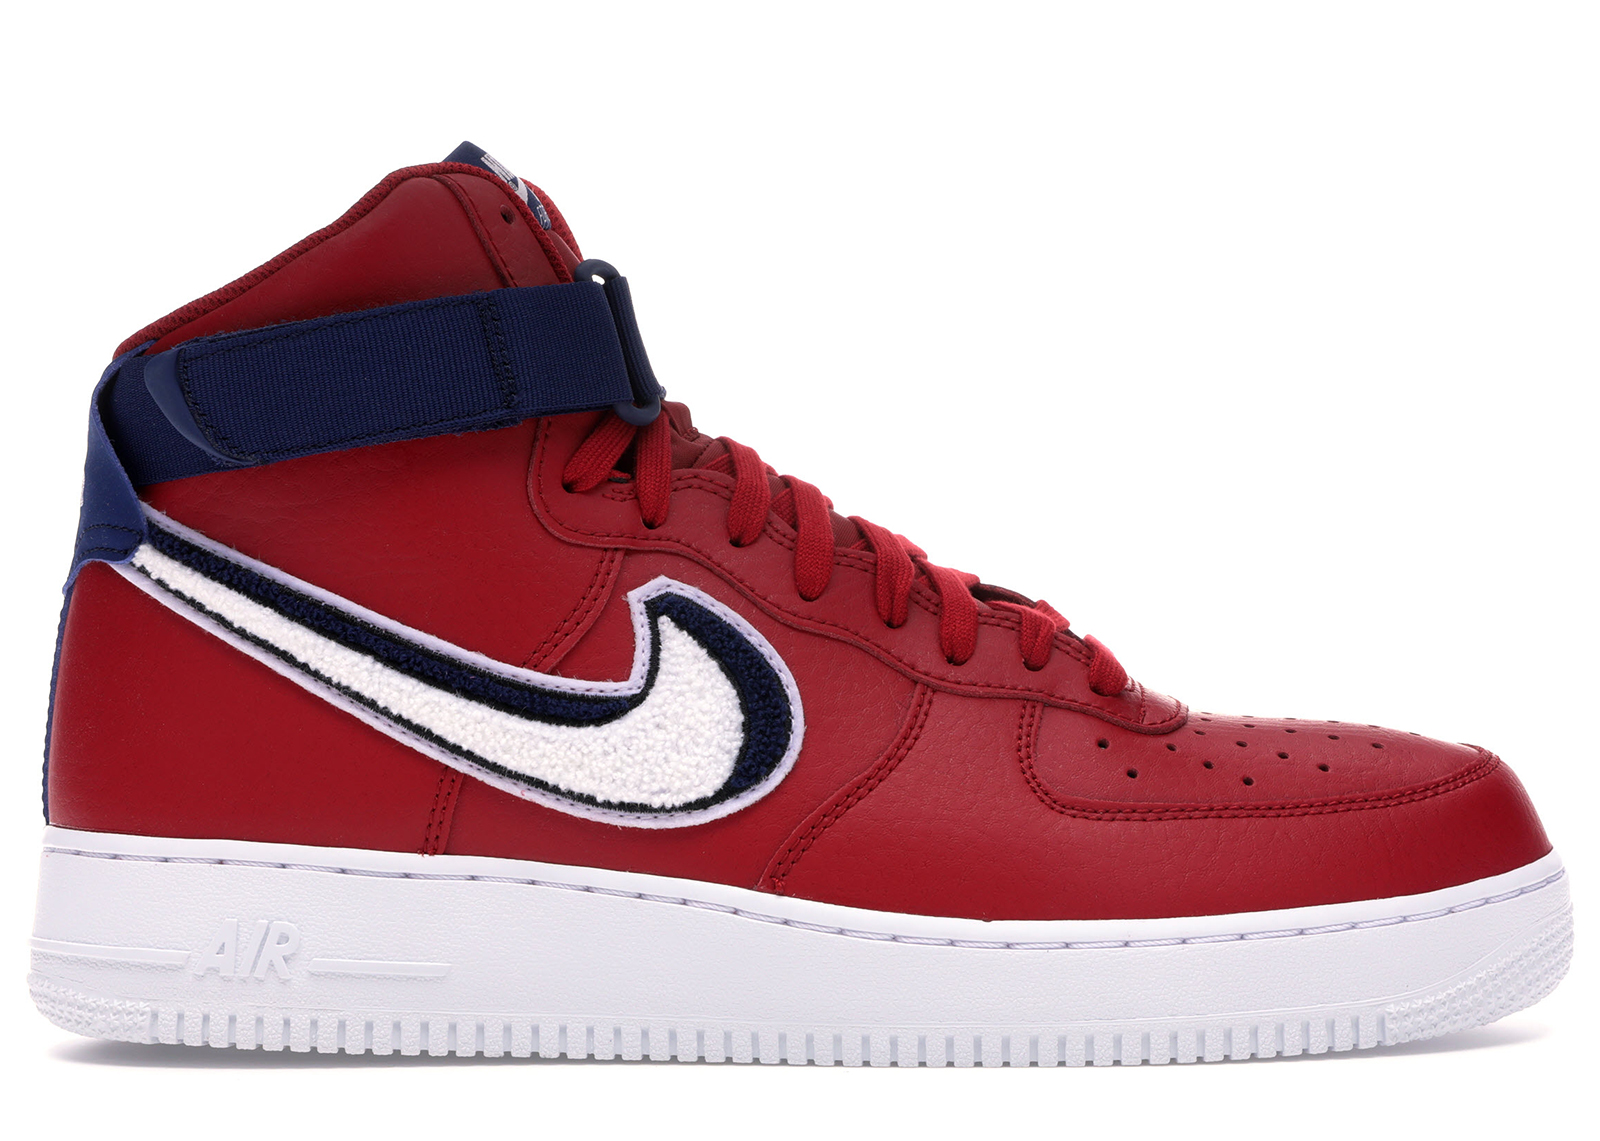 Nike Air Force 1 High 3D Chenille Swoosh Red White Blue - 806403-603